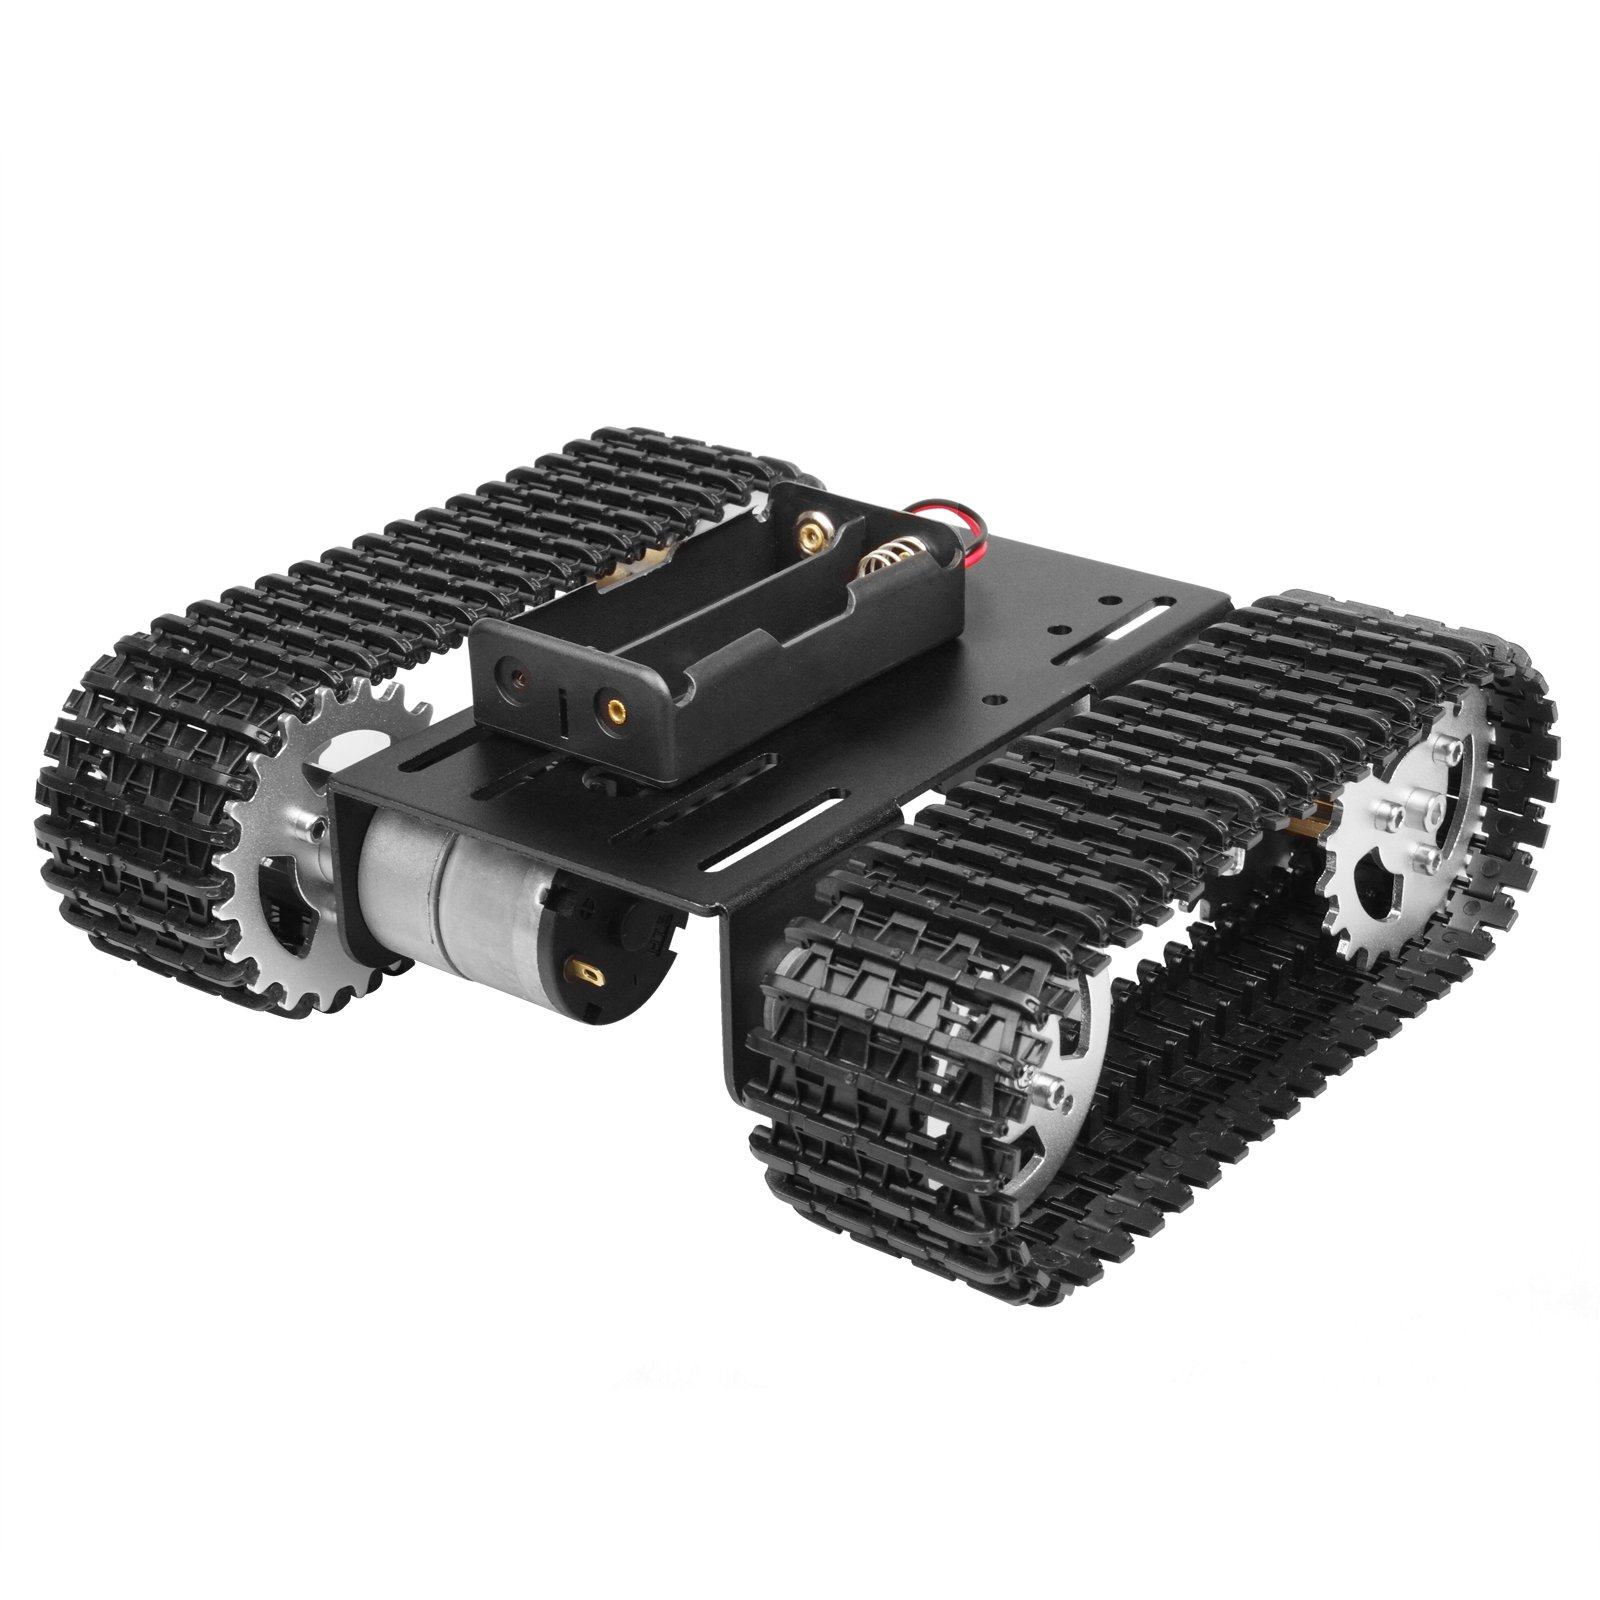 OTTFF Robot Tank Chassis Track Arduino Tank Chassis Raspberry DIY STEM - Speed of 20m / min Maximum Load 2kg